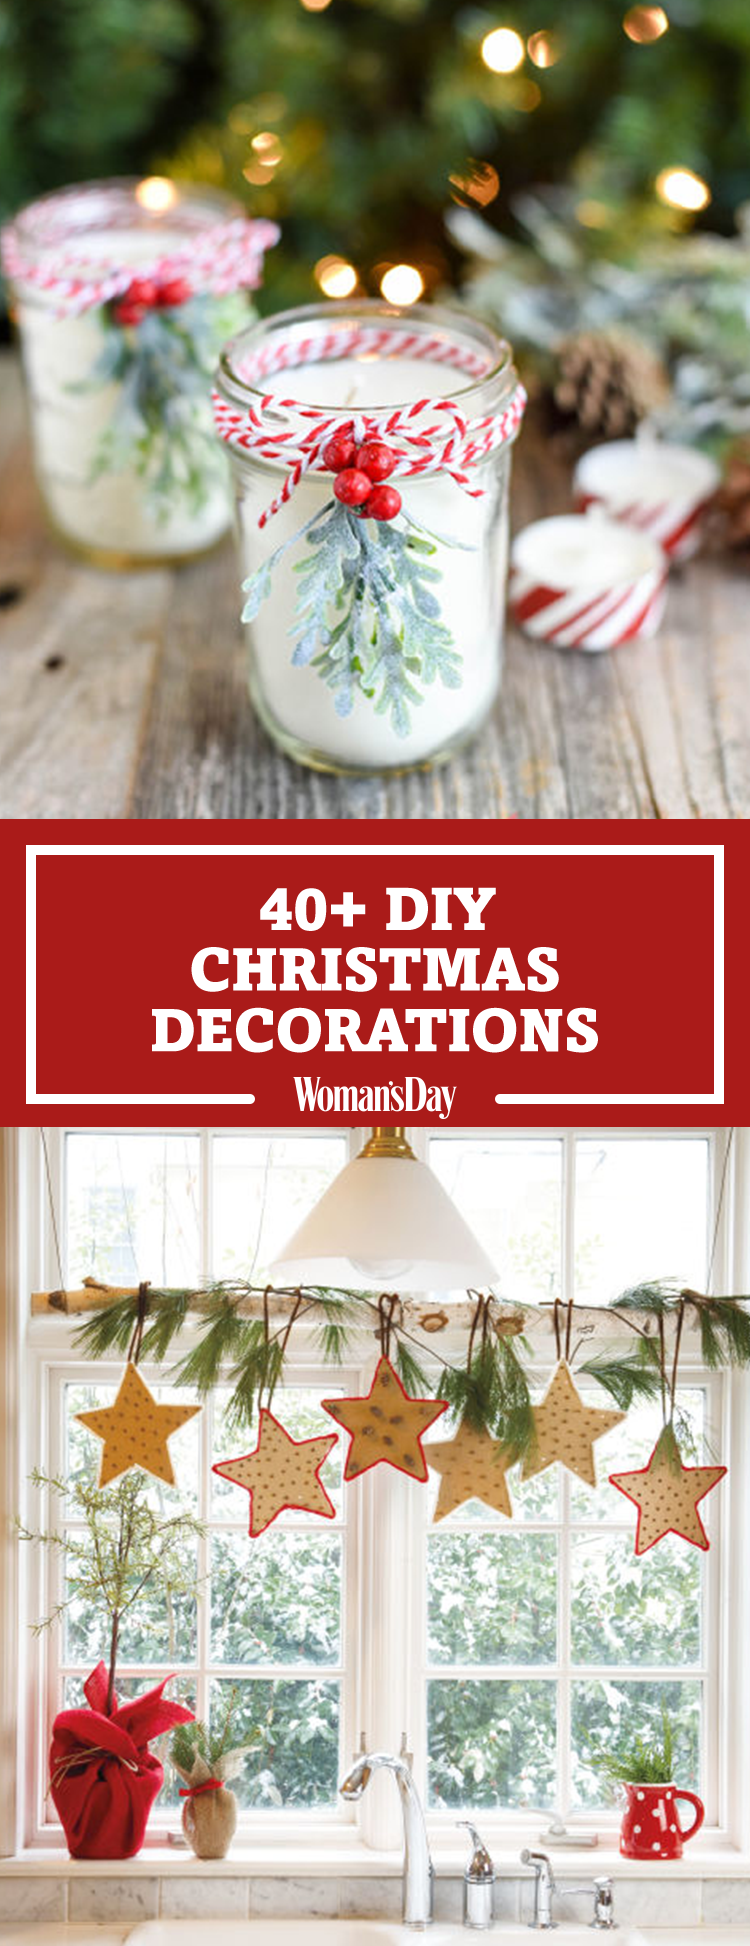 home decorating ideas for christmas holiday 47 easy diy christmas decorations ideas for 13398